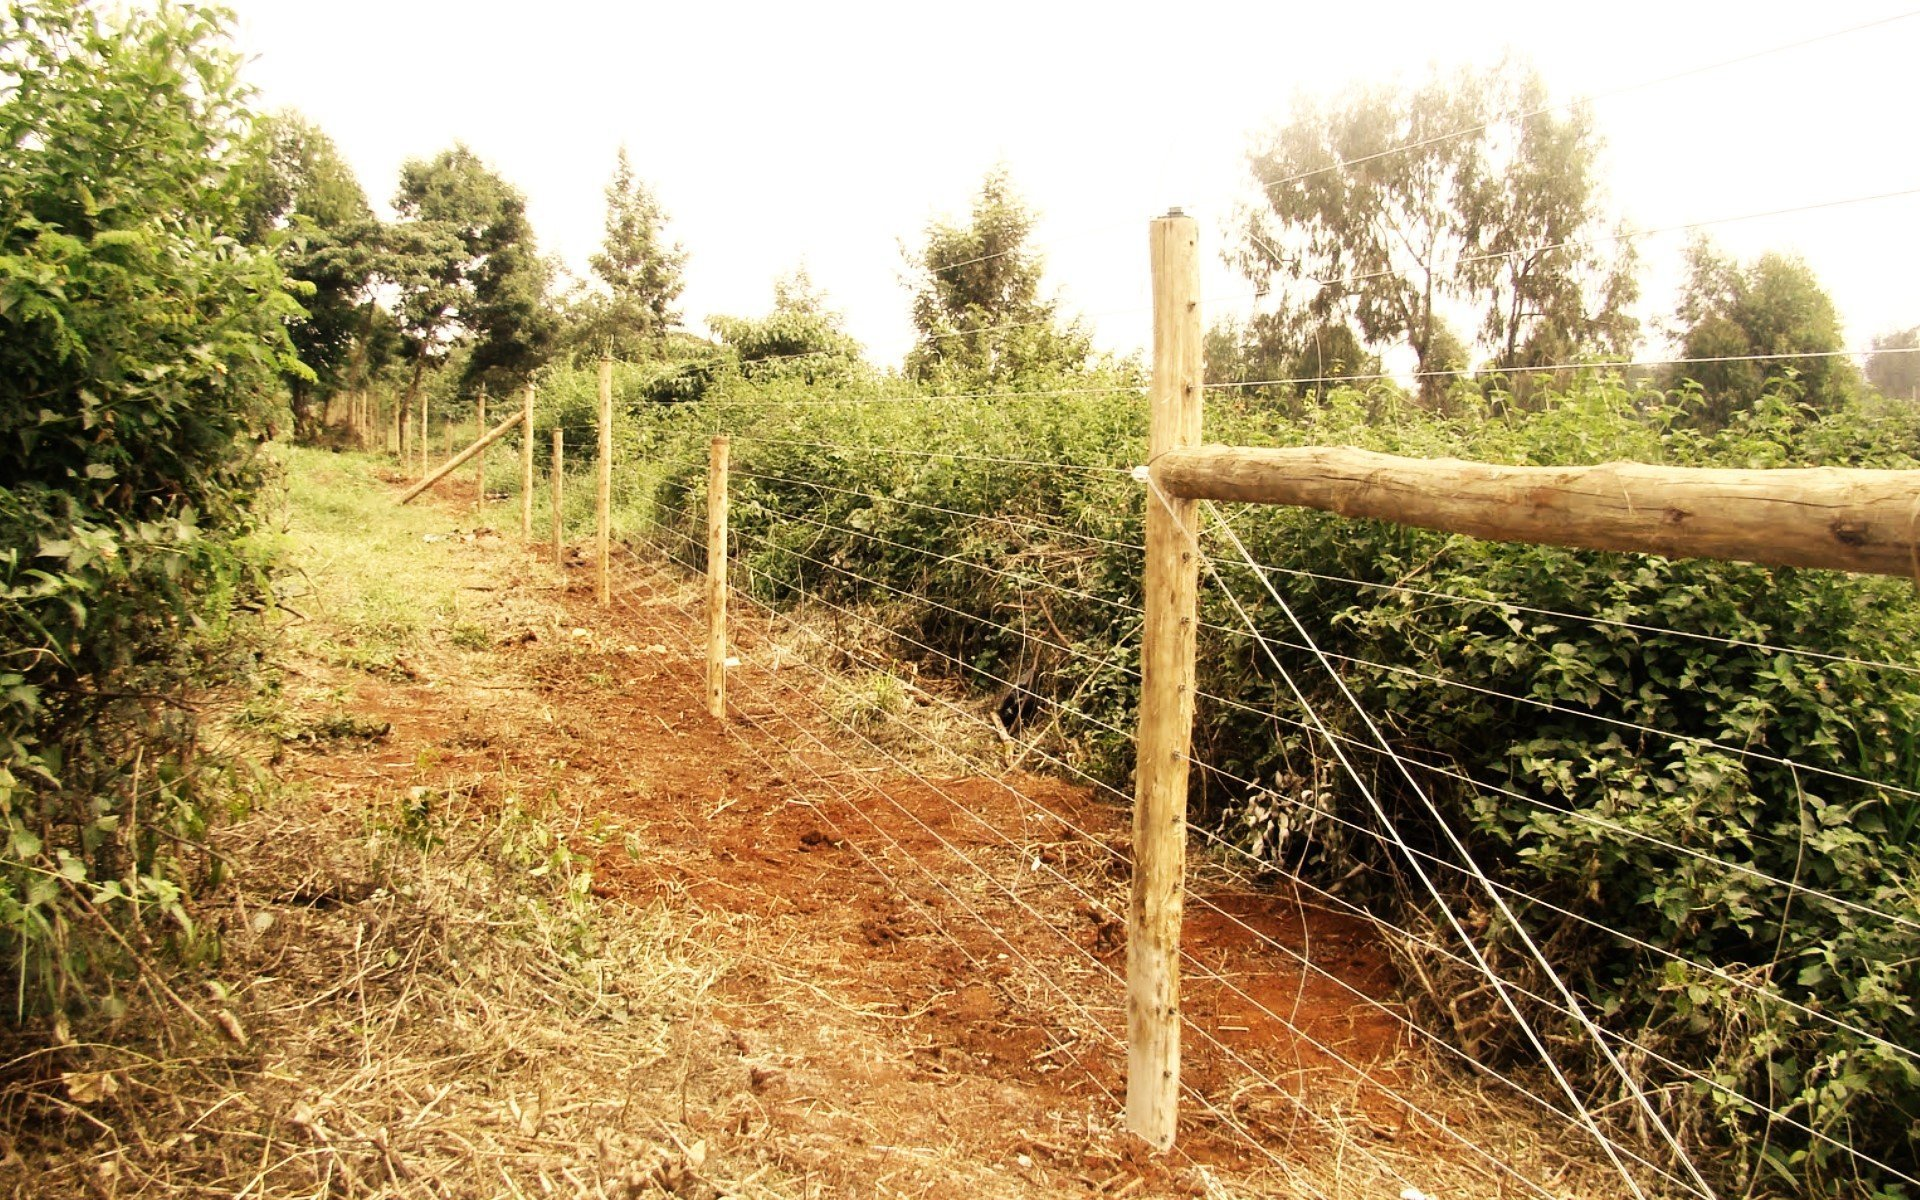 New Tsavo fence will lower human-wildlife conflict